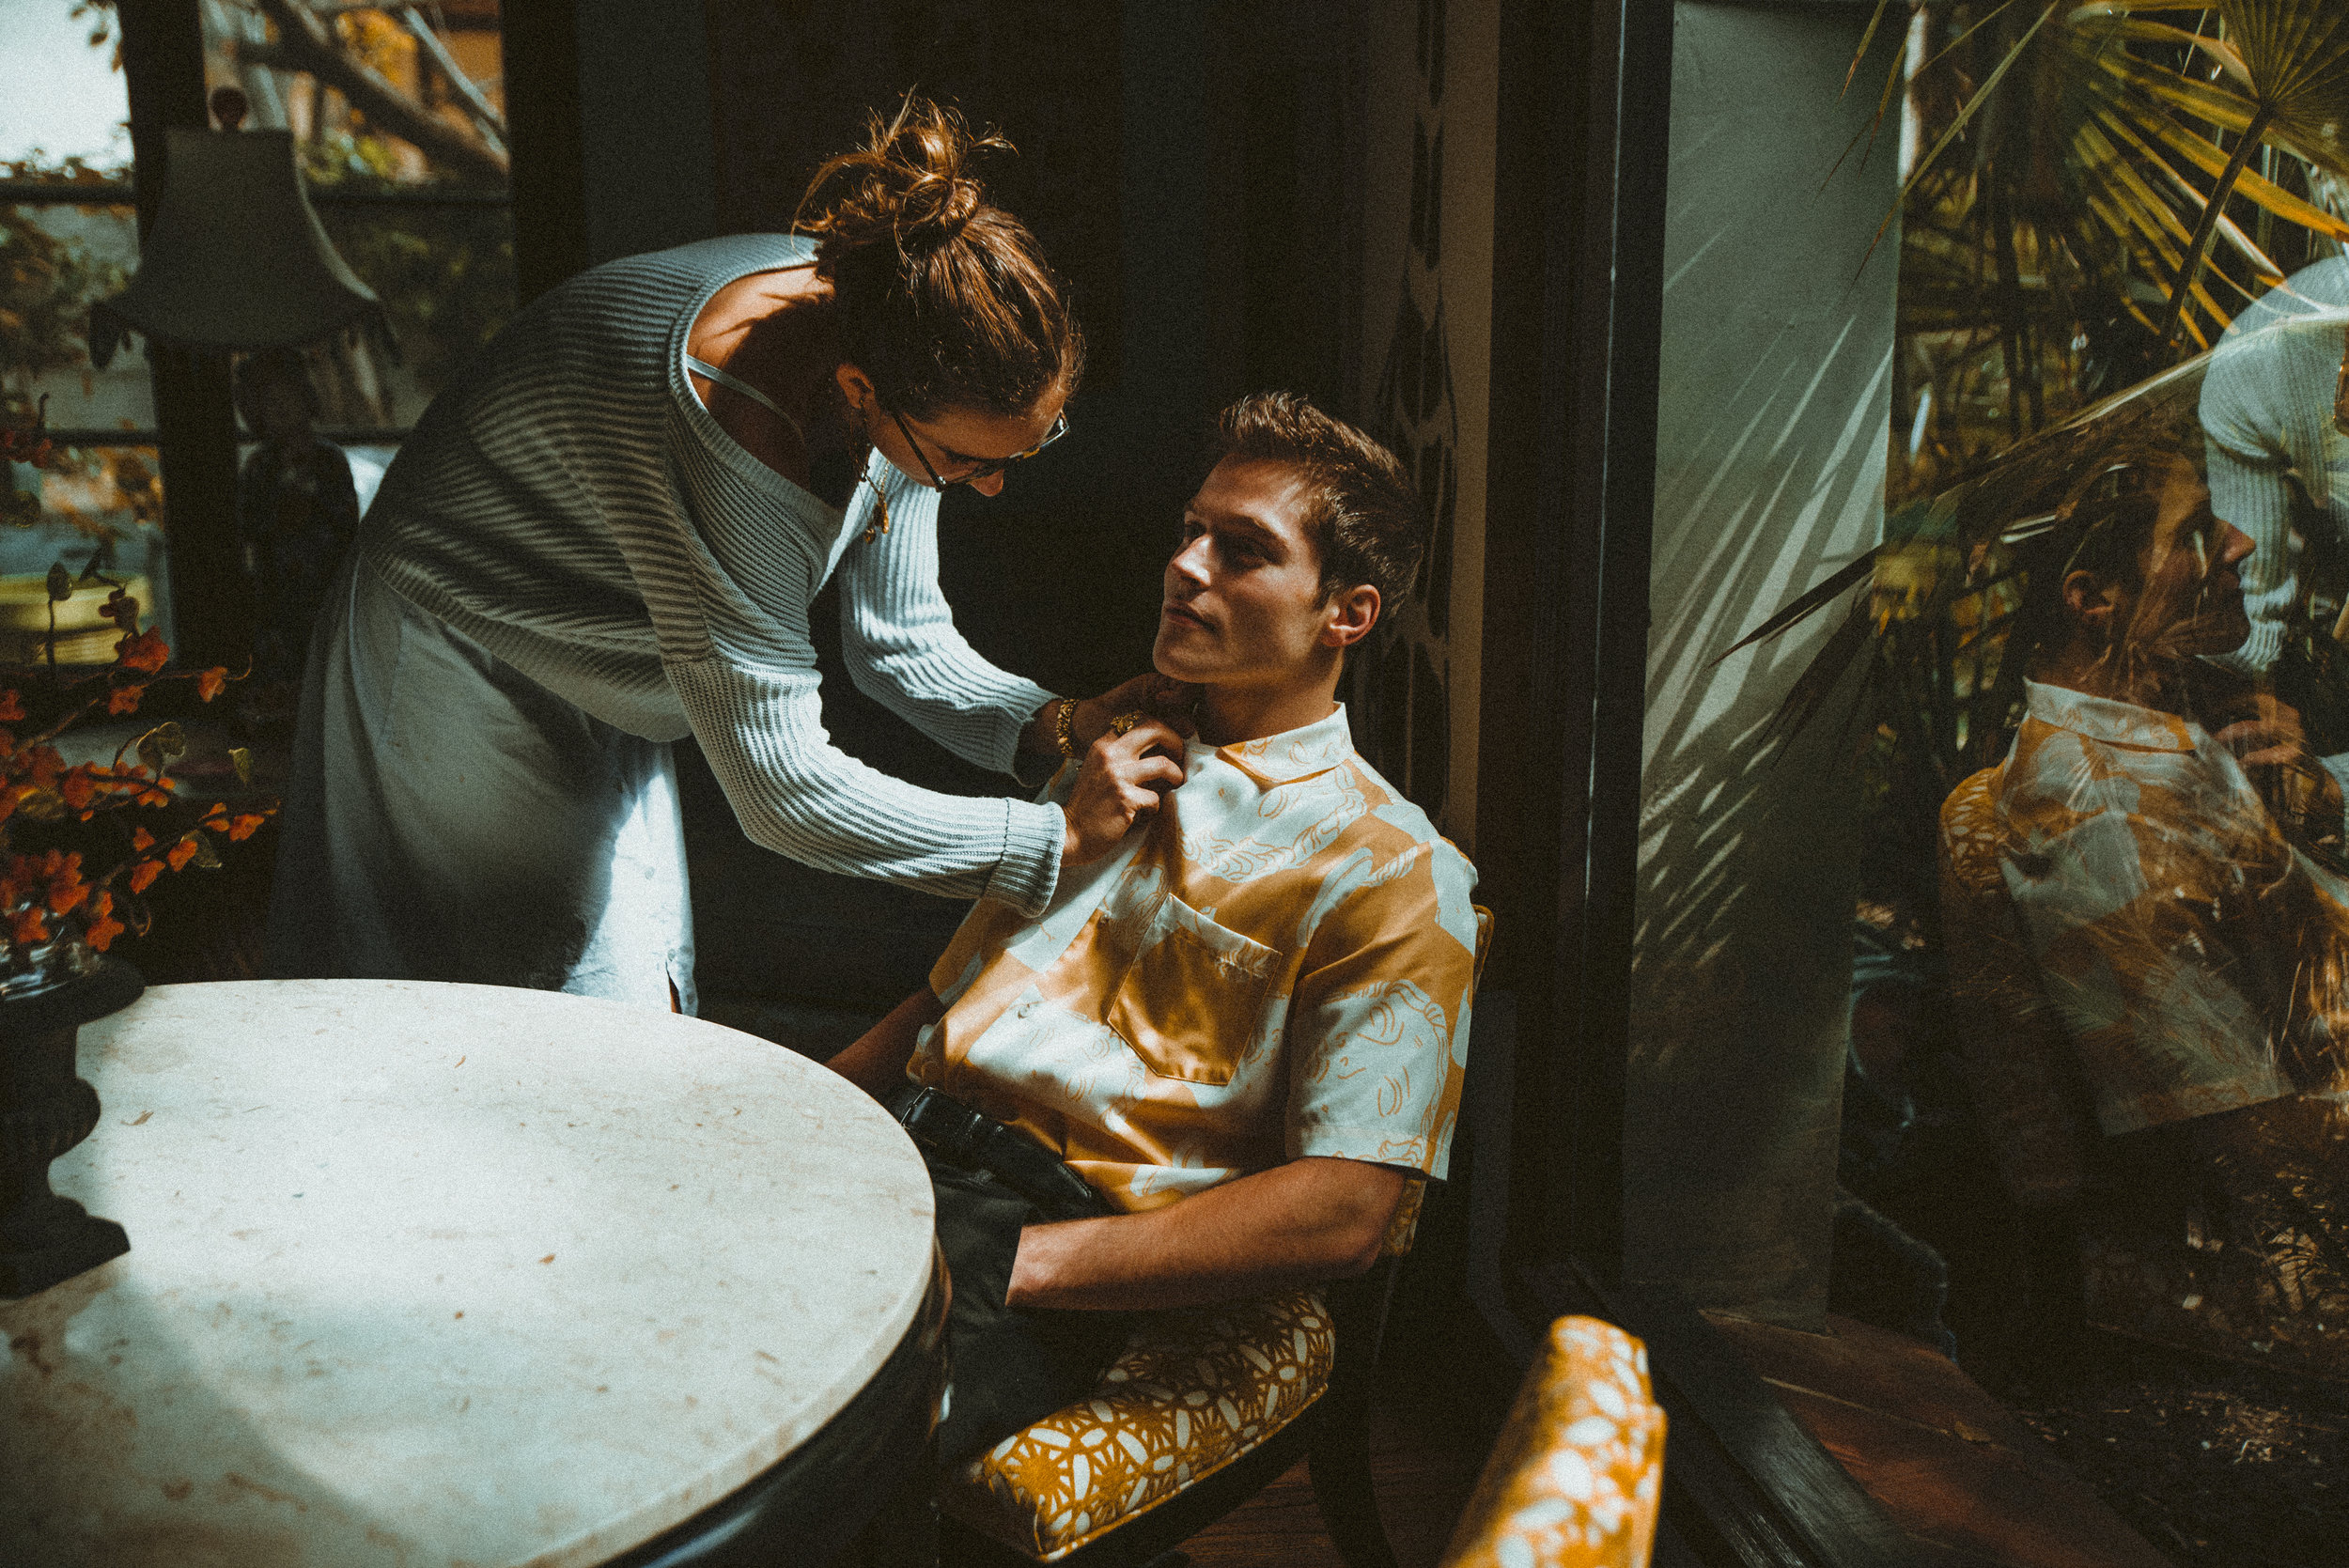 TALENT: Froy STYLIST: Gabriela Tena